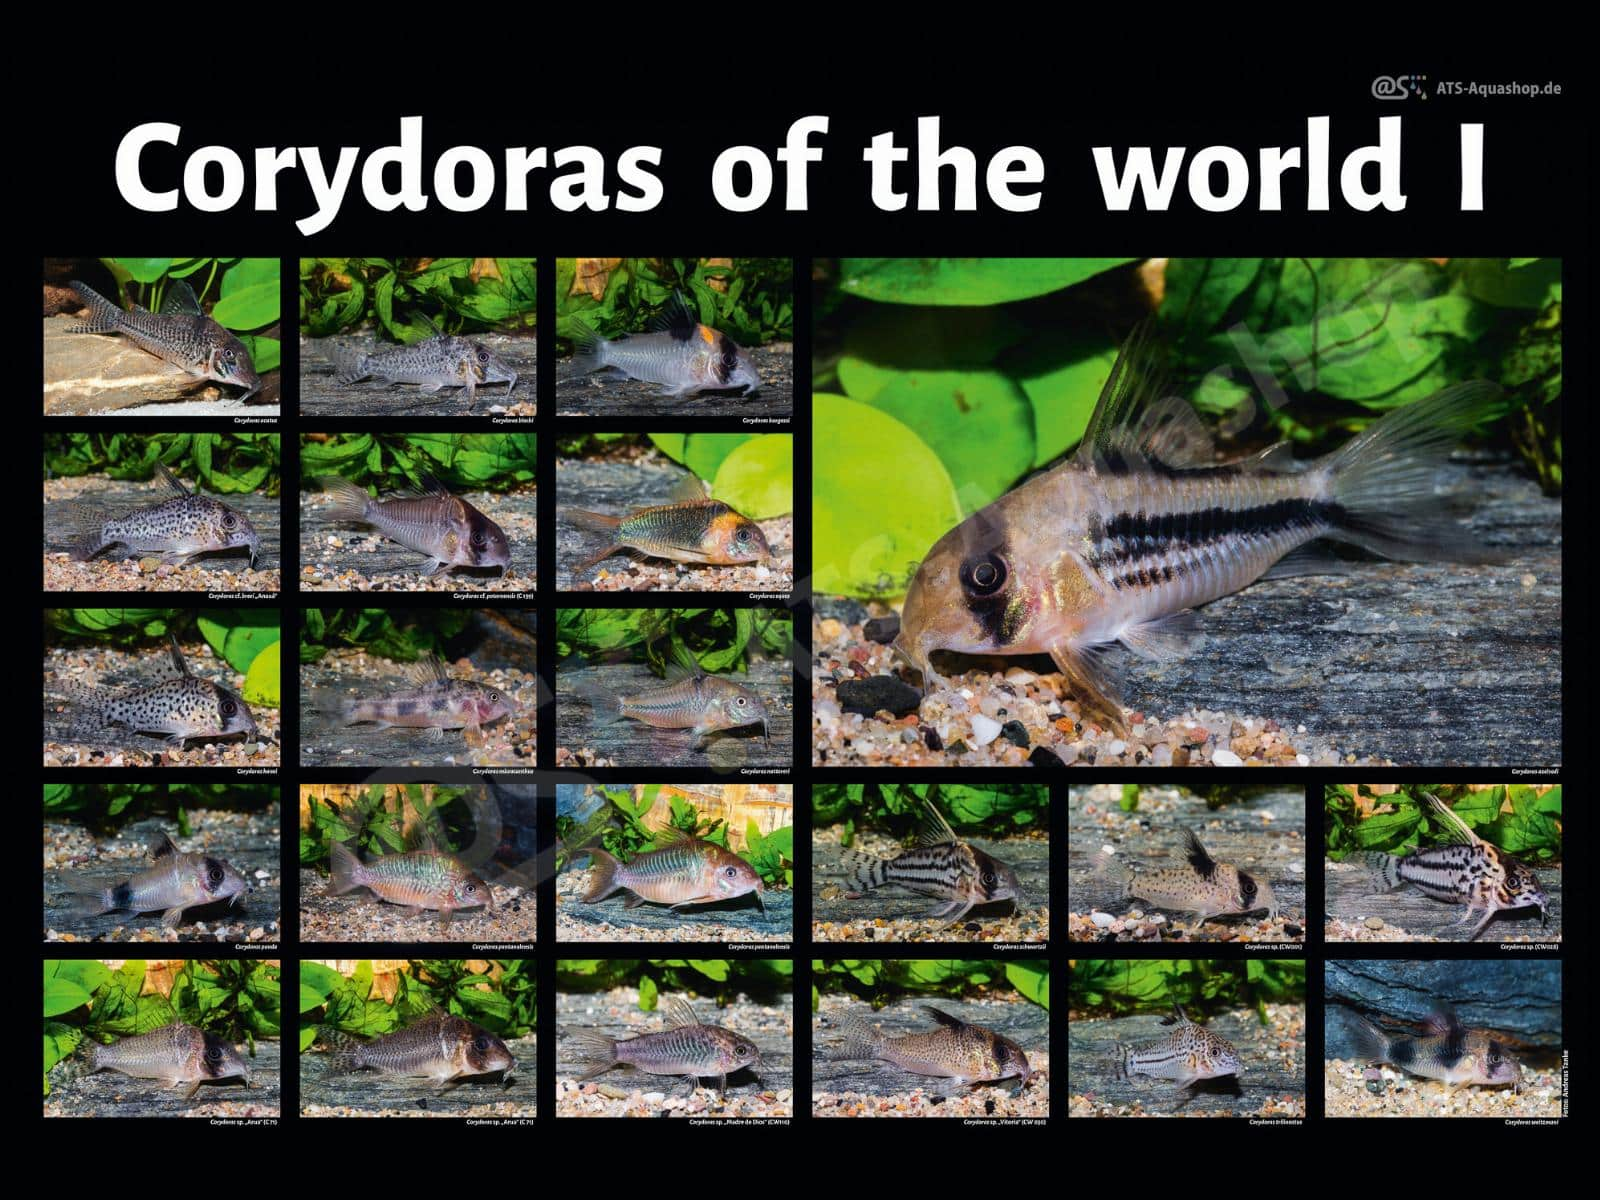 Poster: Corydoras of the world I (Andreas Tanke)